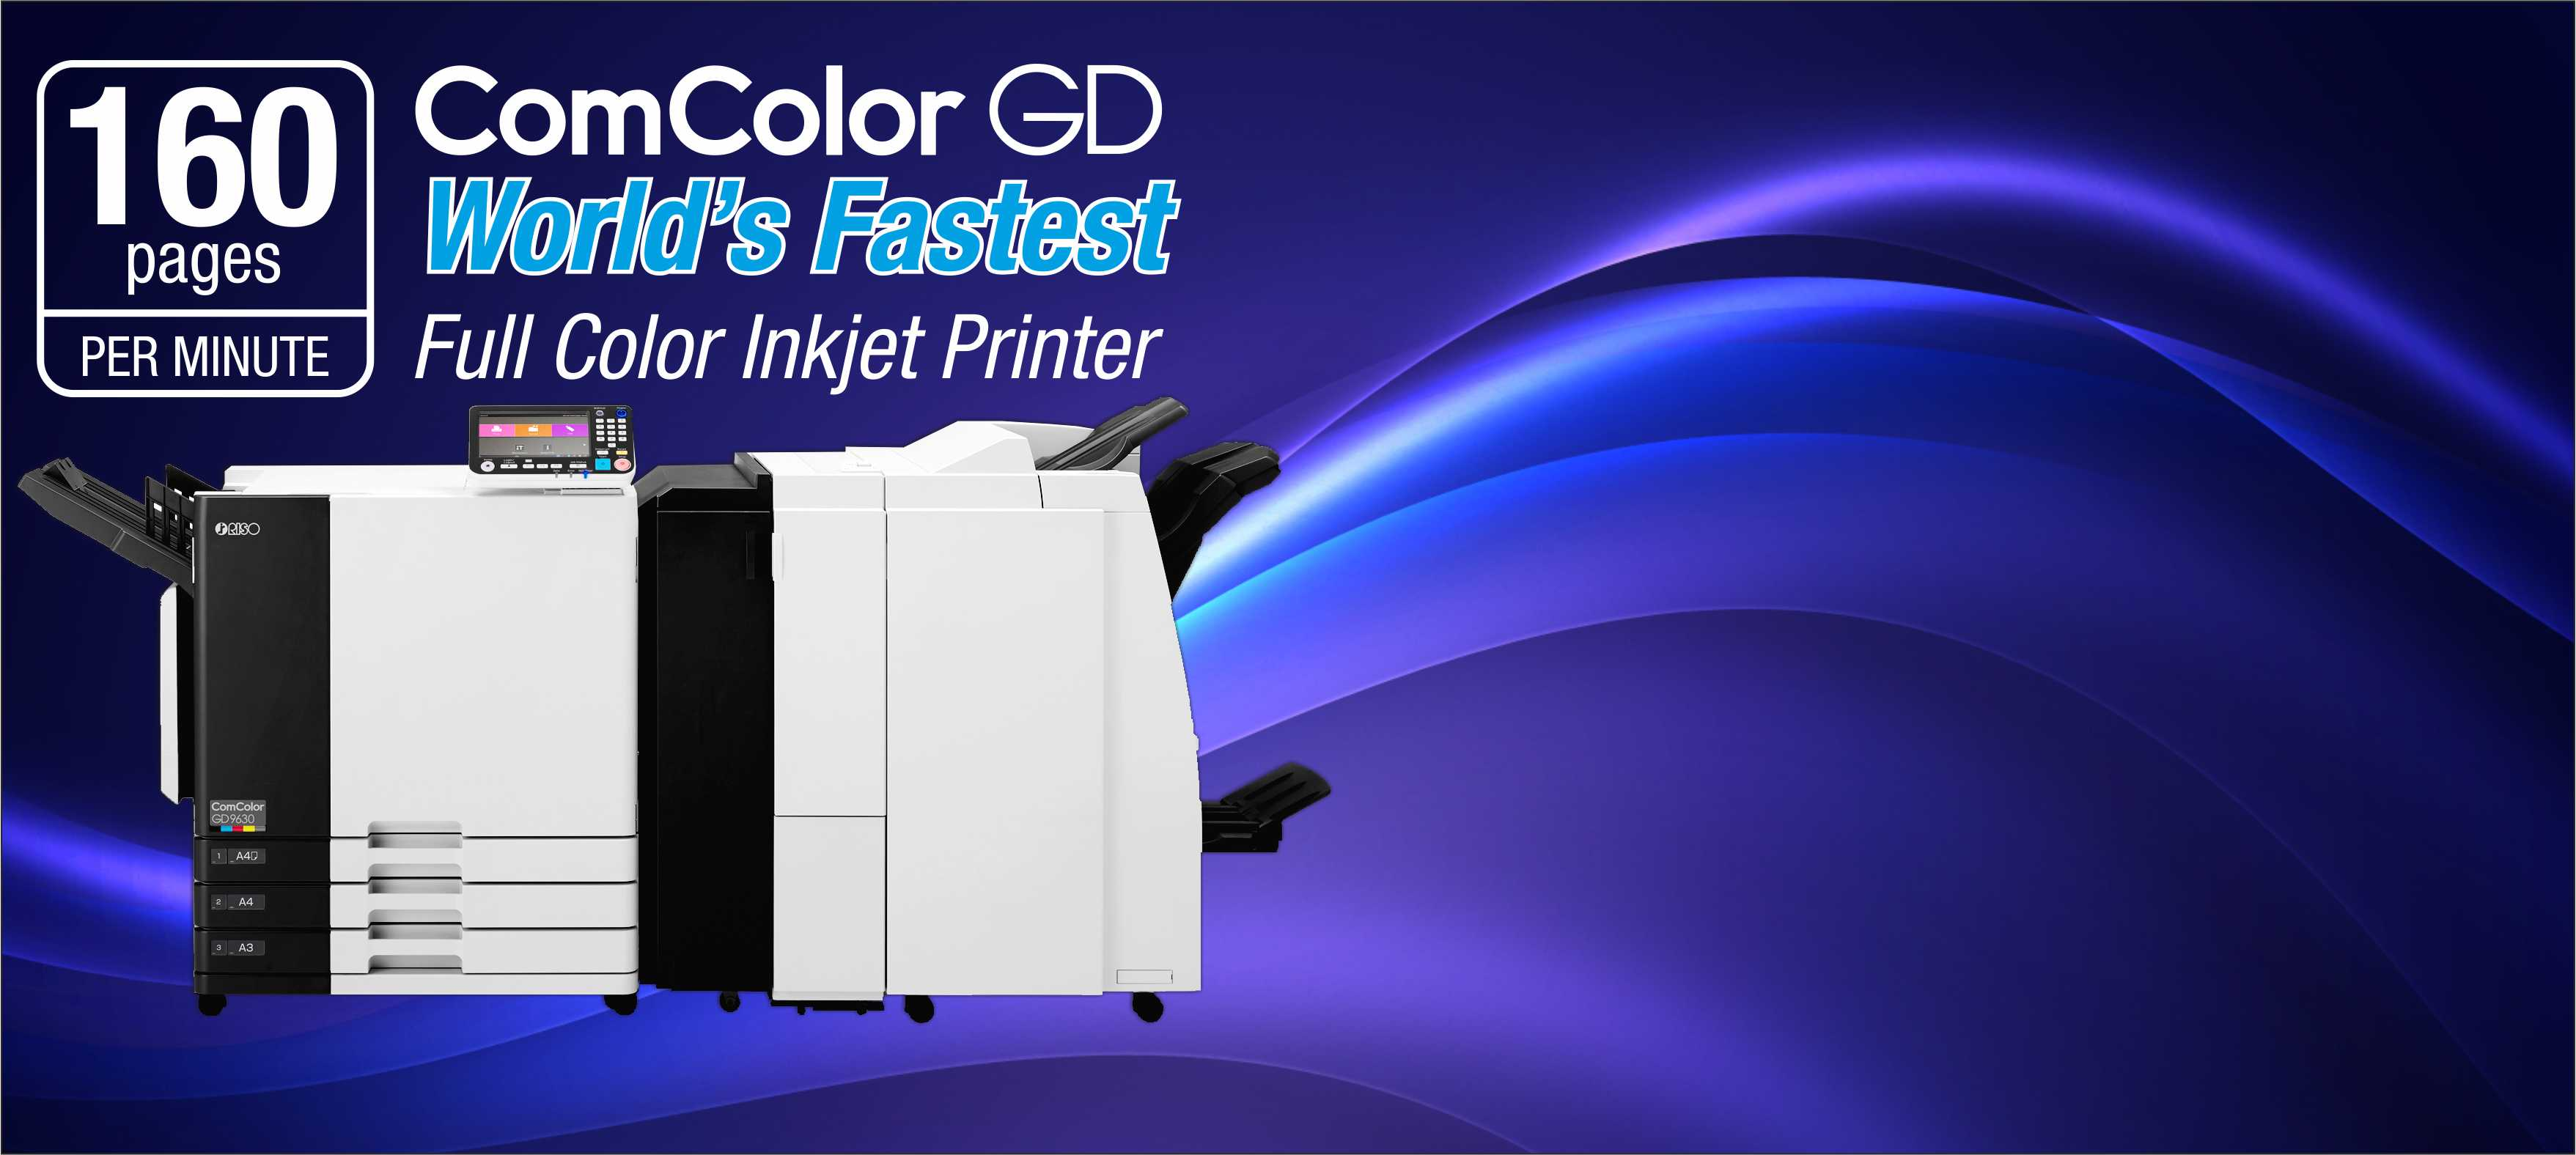 GD Inkjet Printer